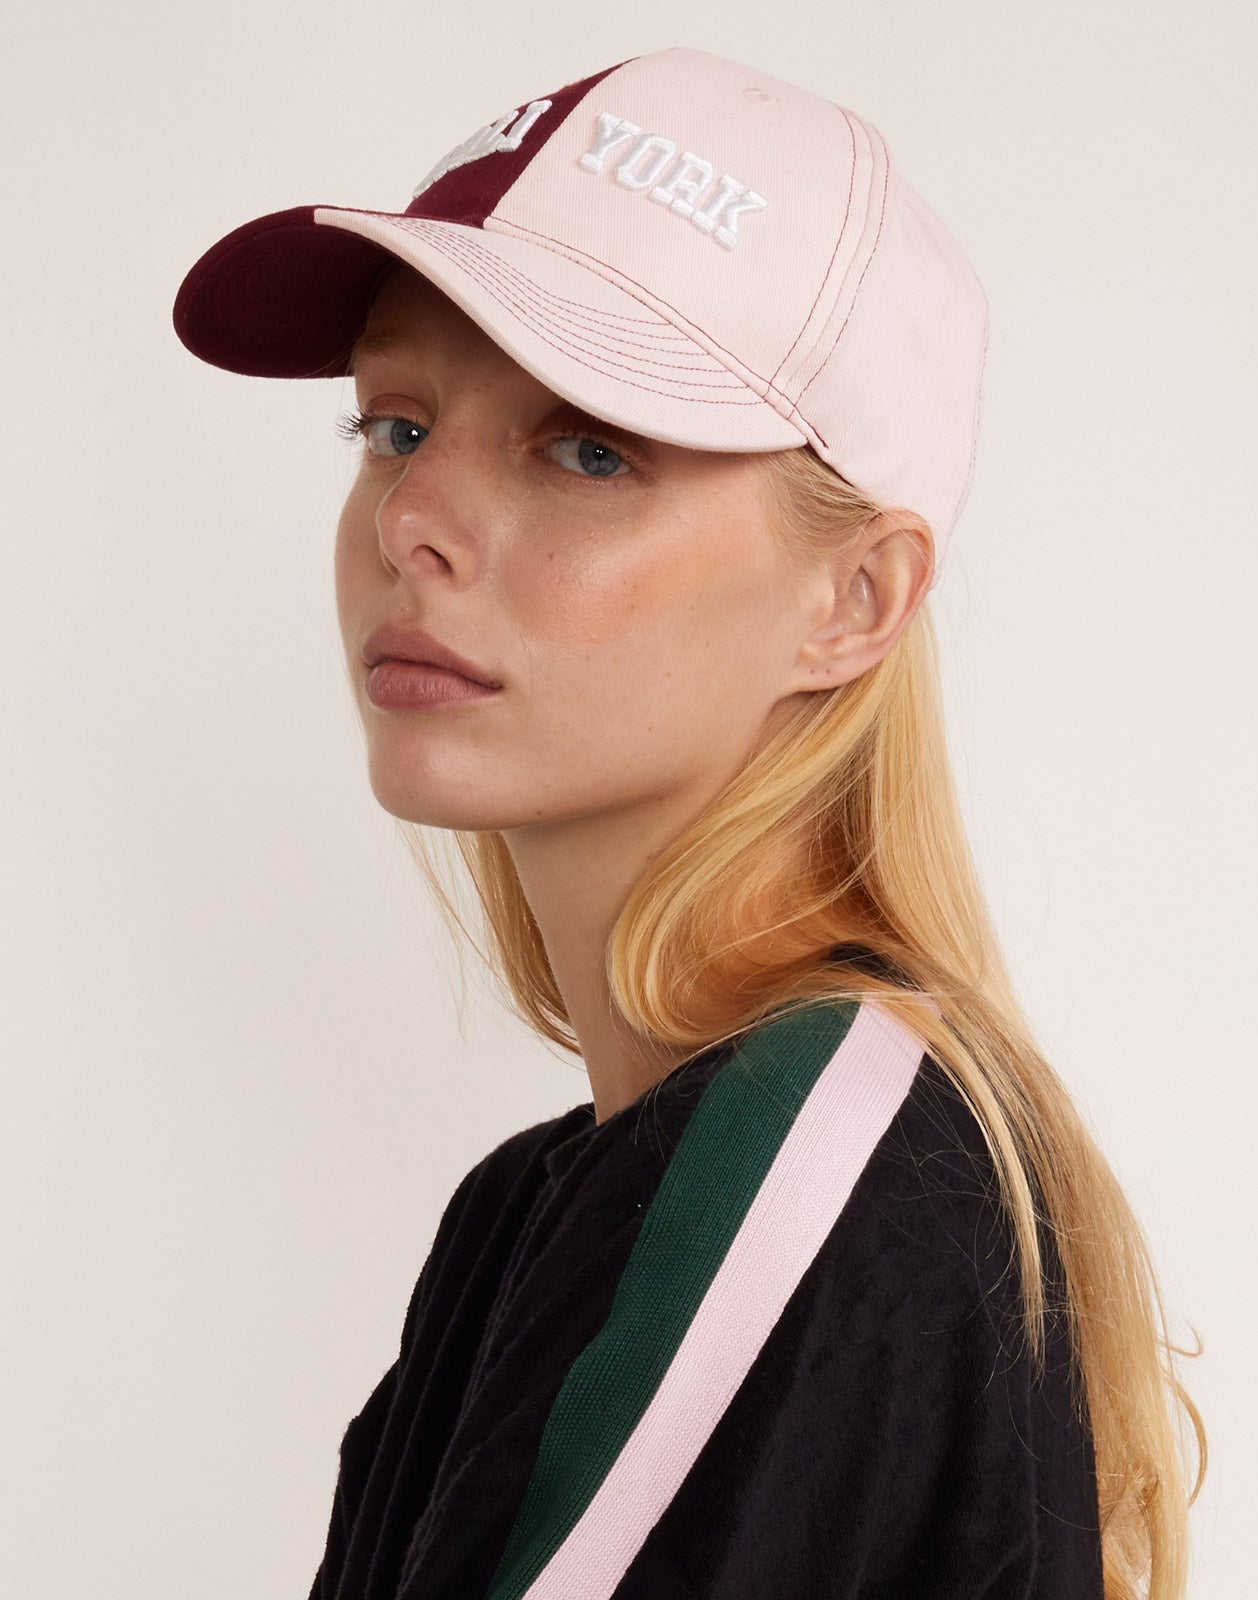 CR x Bandier two tone base ball hat seen from the blush side.